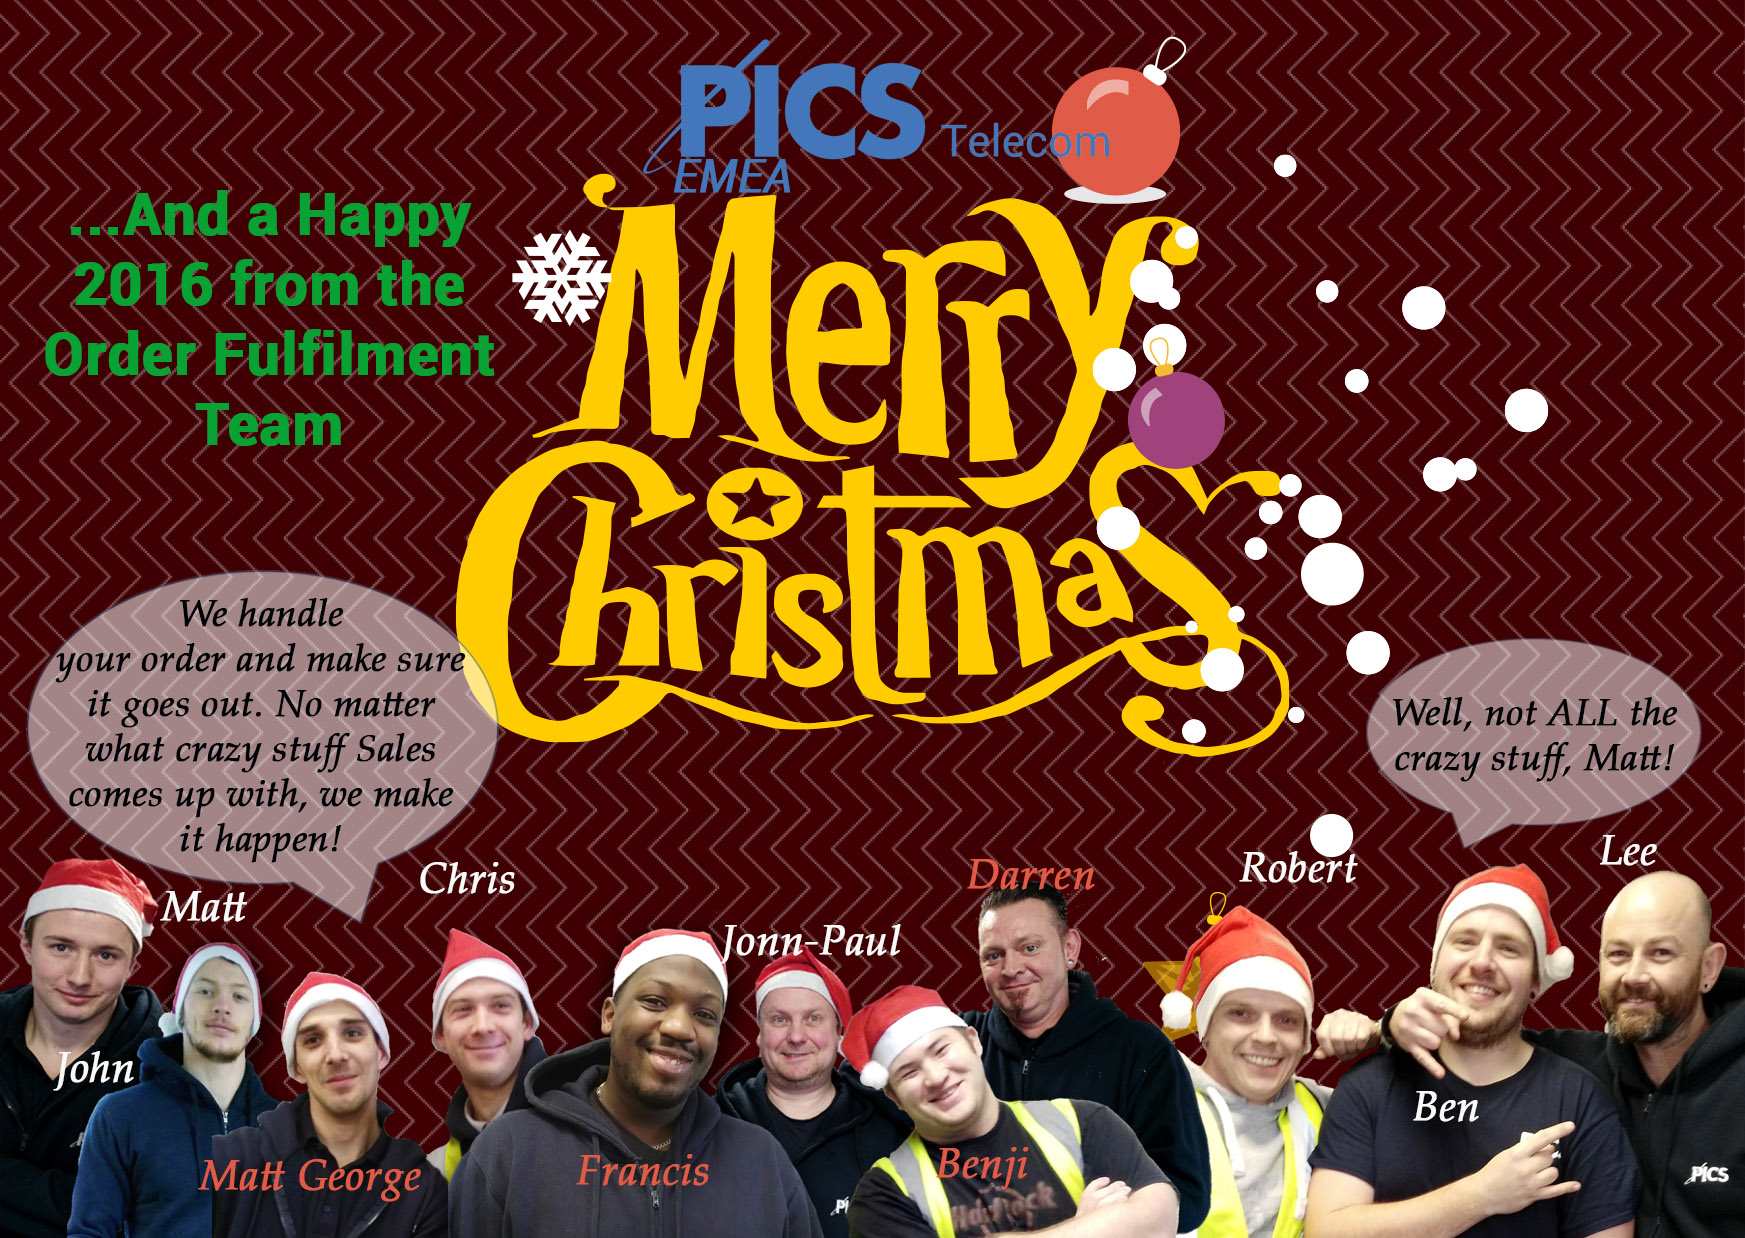 PICS Telecom UK Christmas Card Warehouse